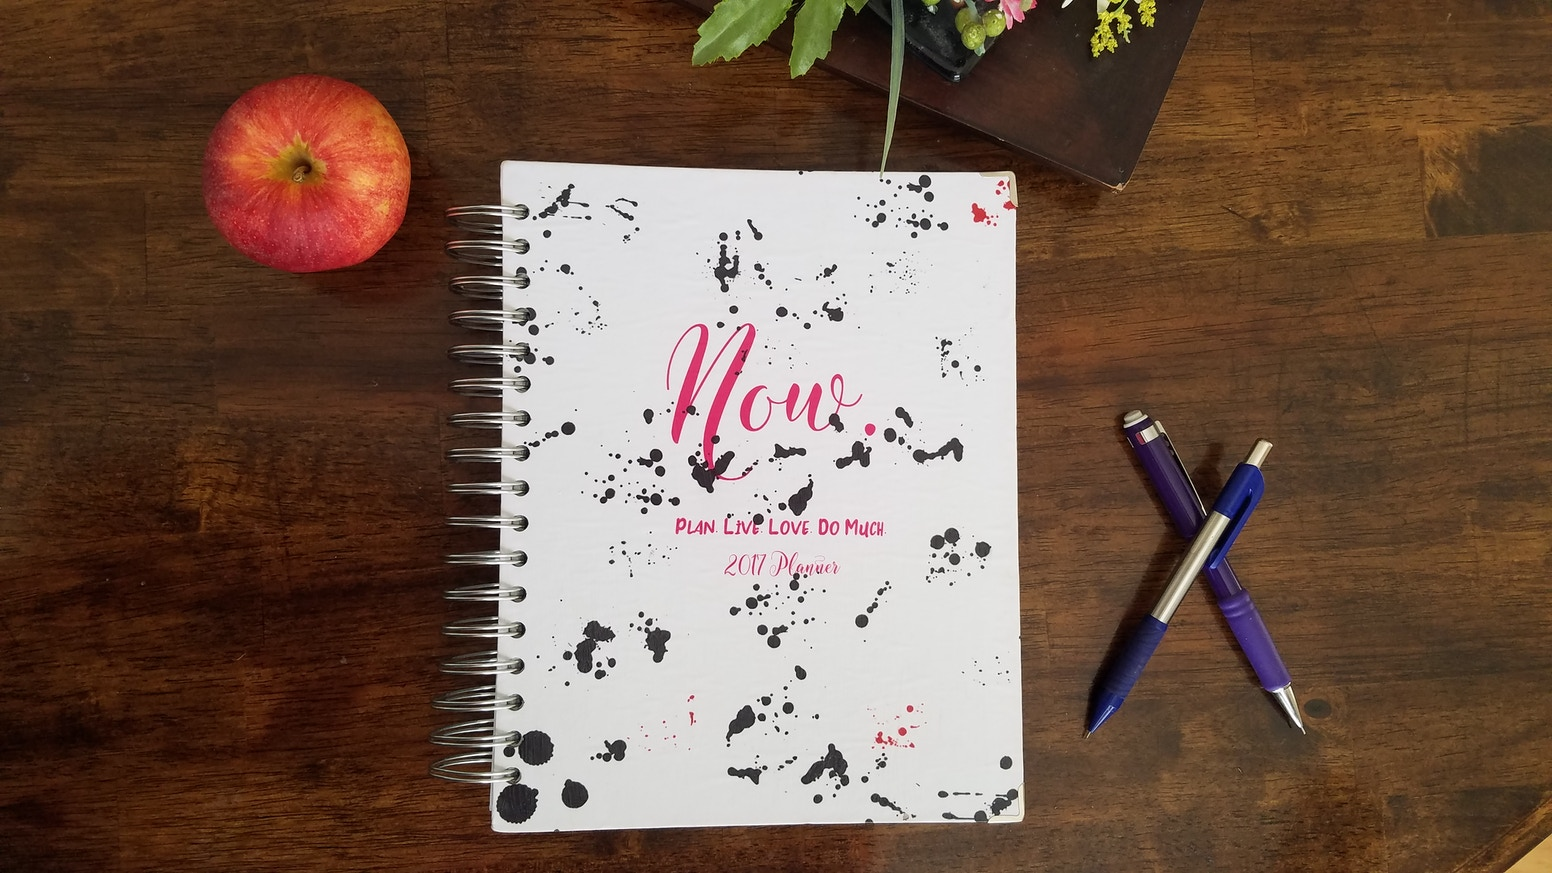 So you can live life now instead of getting caught up in drudgery and forgetfulness. A planner that makes goals and daily life happen.